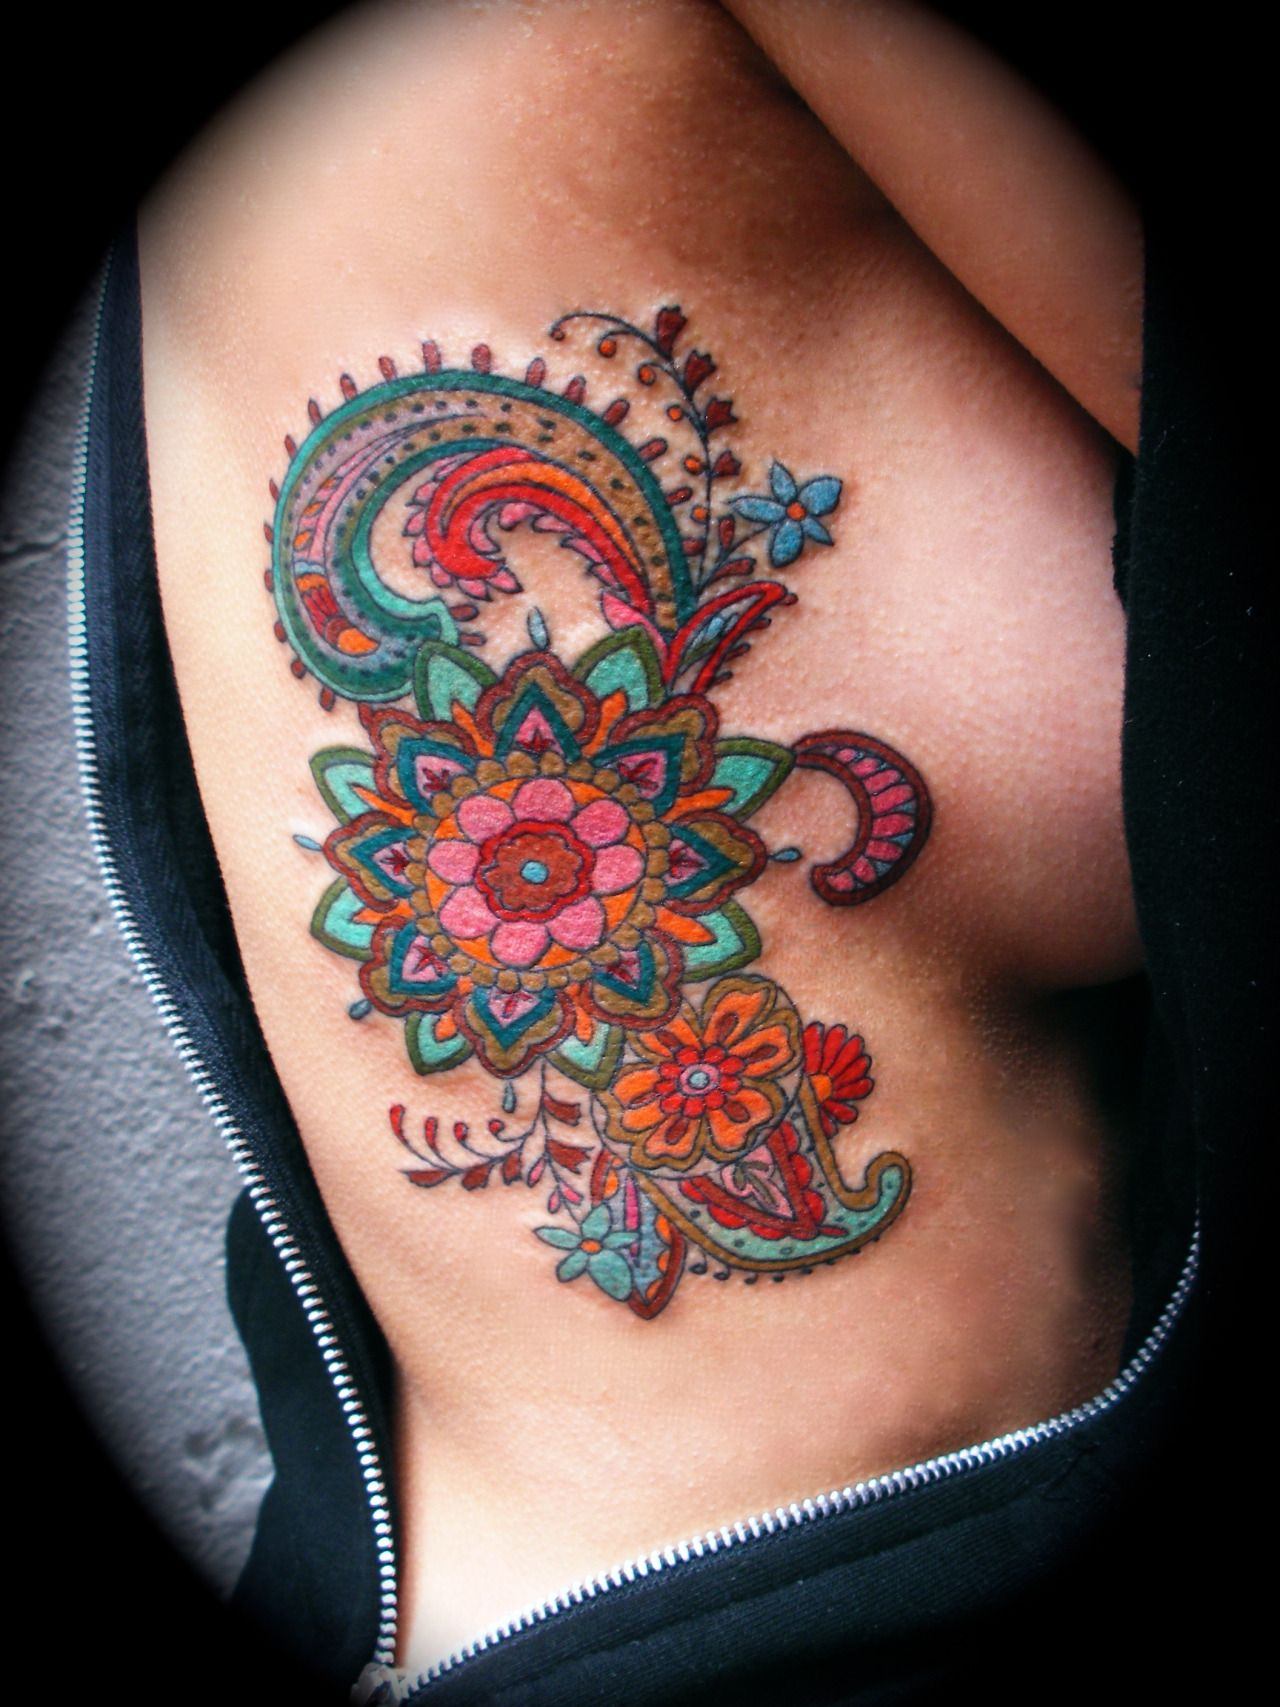 Cool Henna Designs For Girls: I'm Always Keen On Doing Colorful Henna-paisley Jacobean